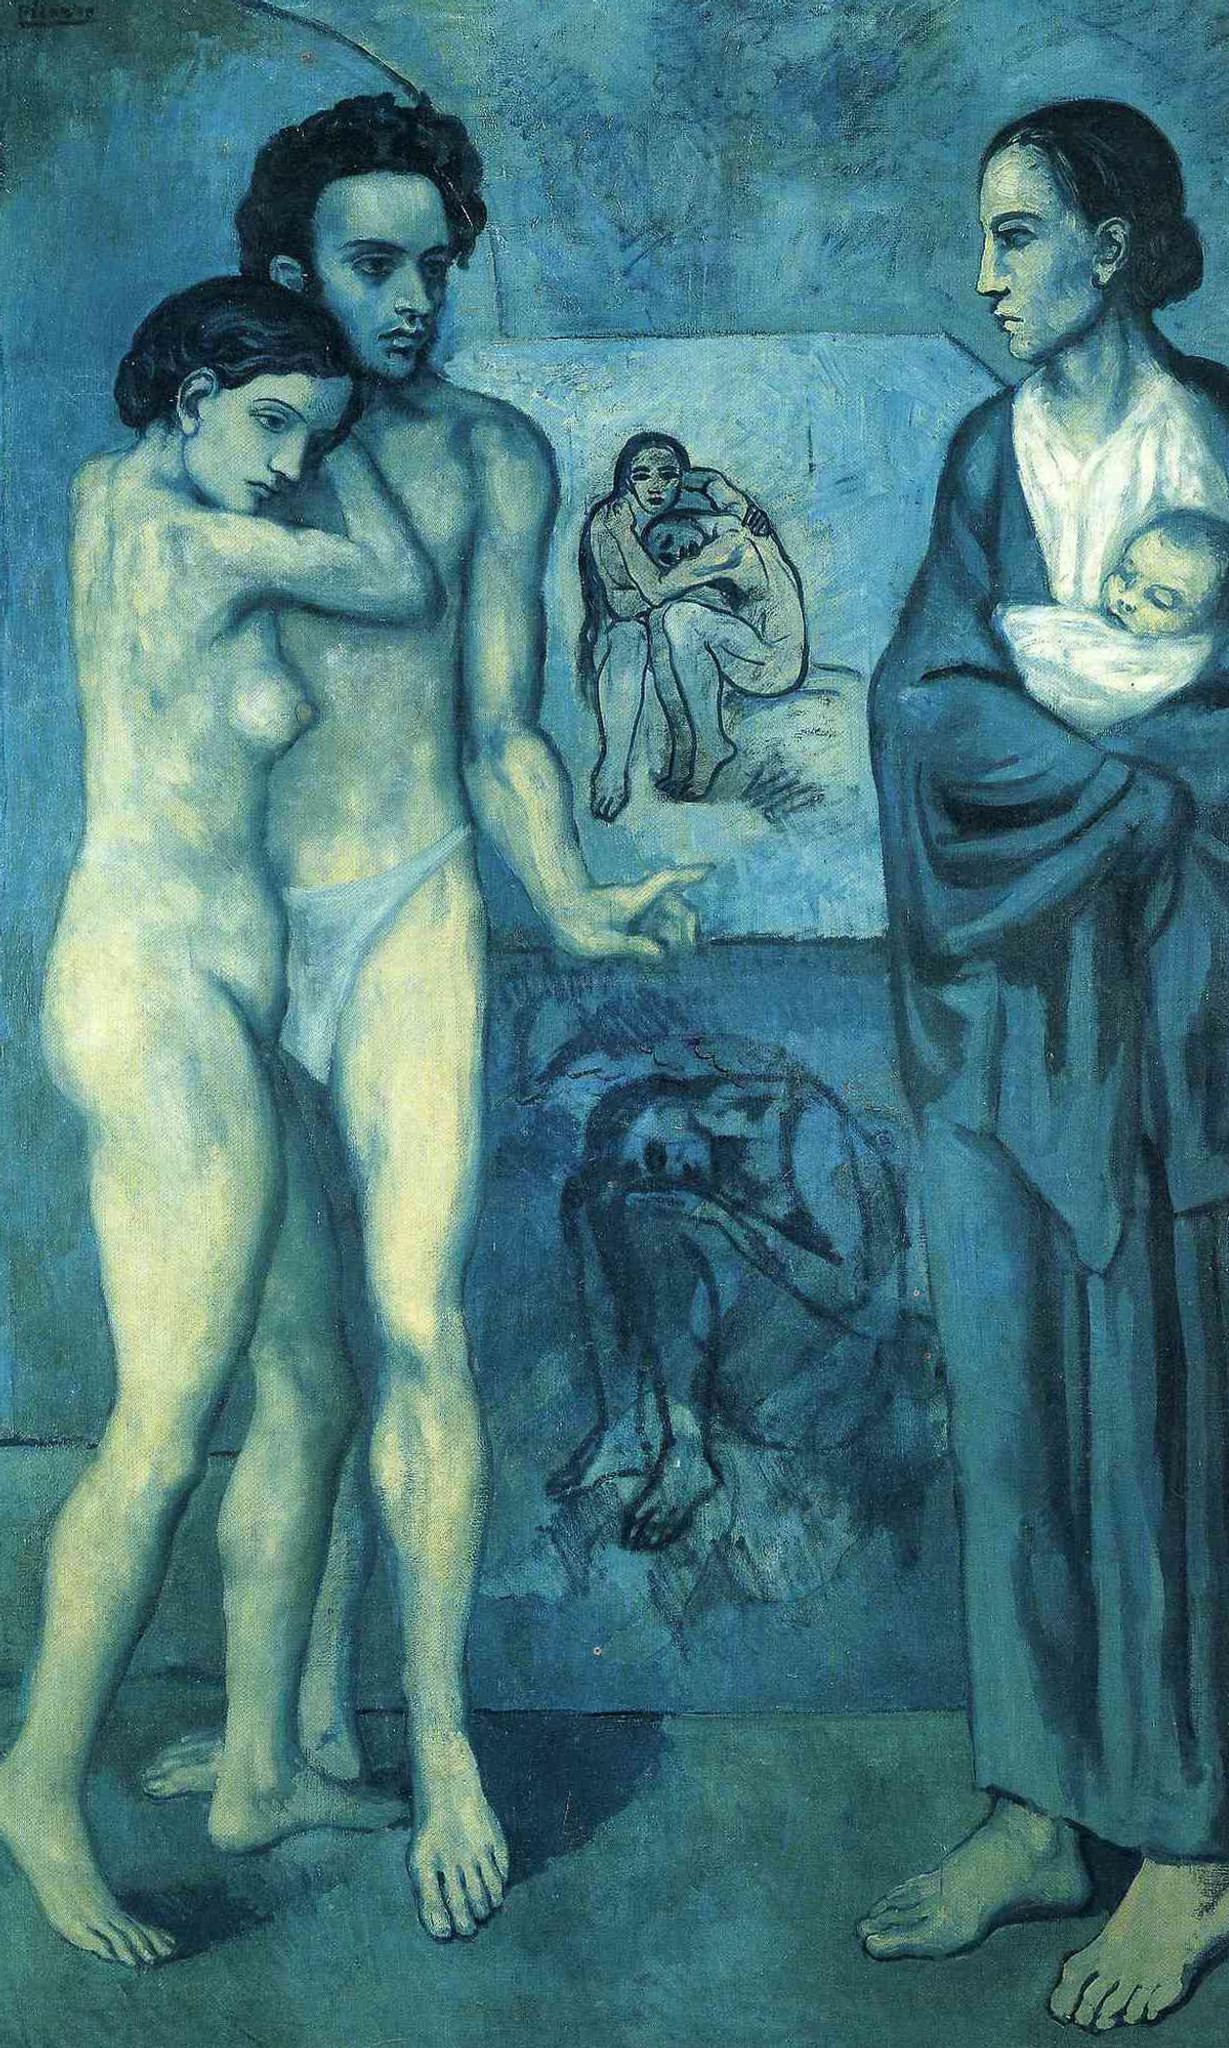 La Vie 1903 by Pablo Picasso Print from Wanford Art Reproductions.